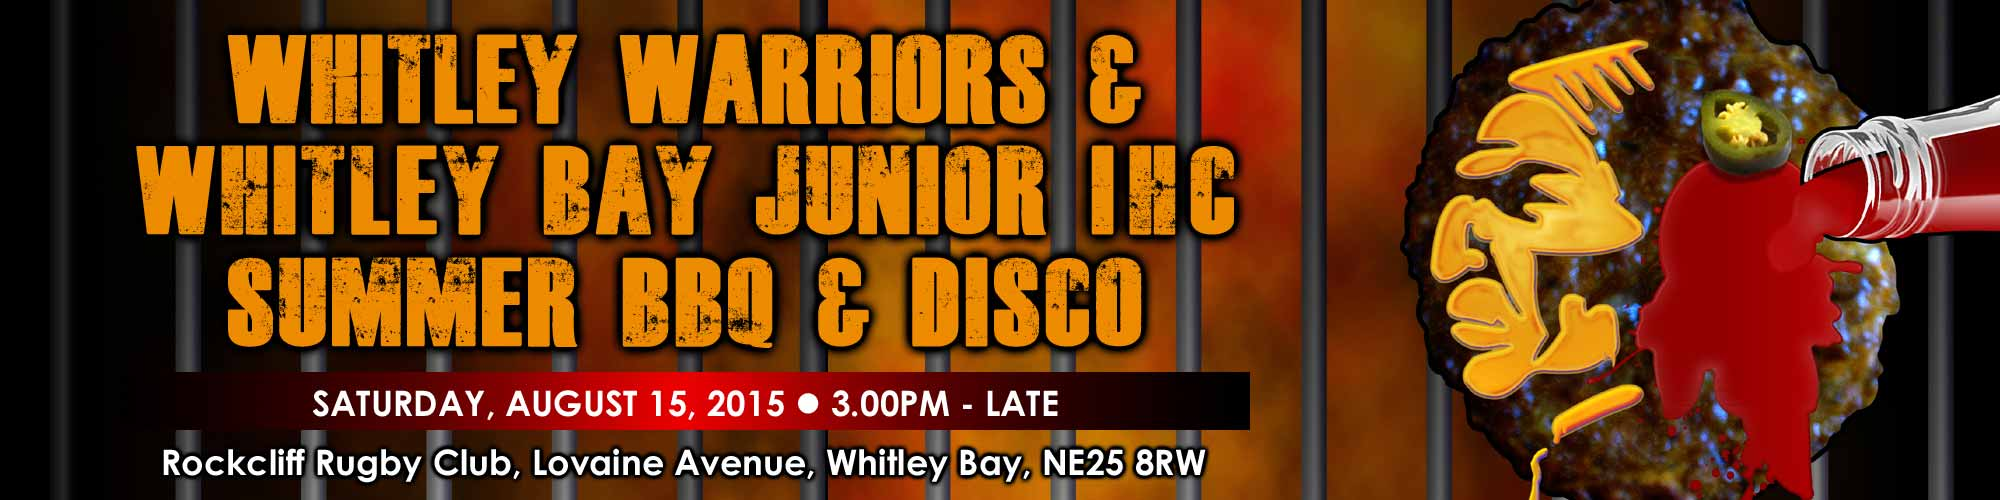 Whitley Warriors and Whitley Bay Junior IHC Summer Barbecue and Funday